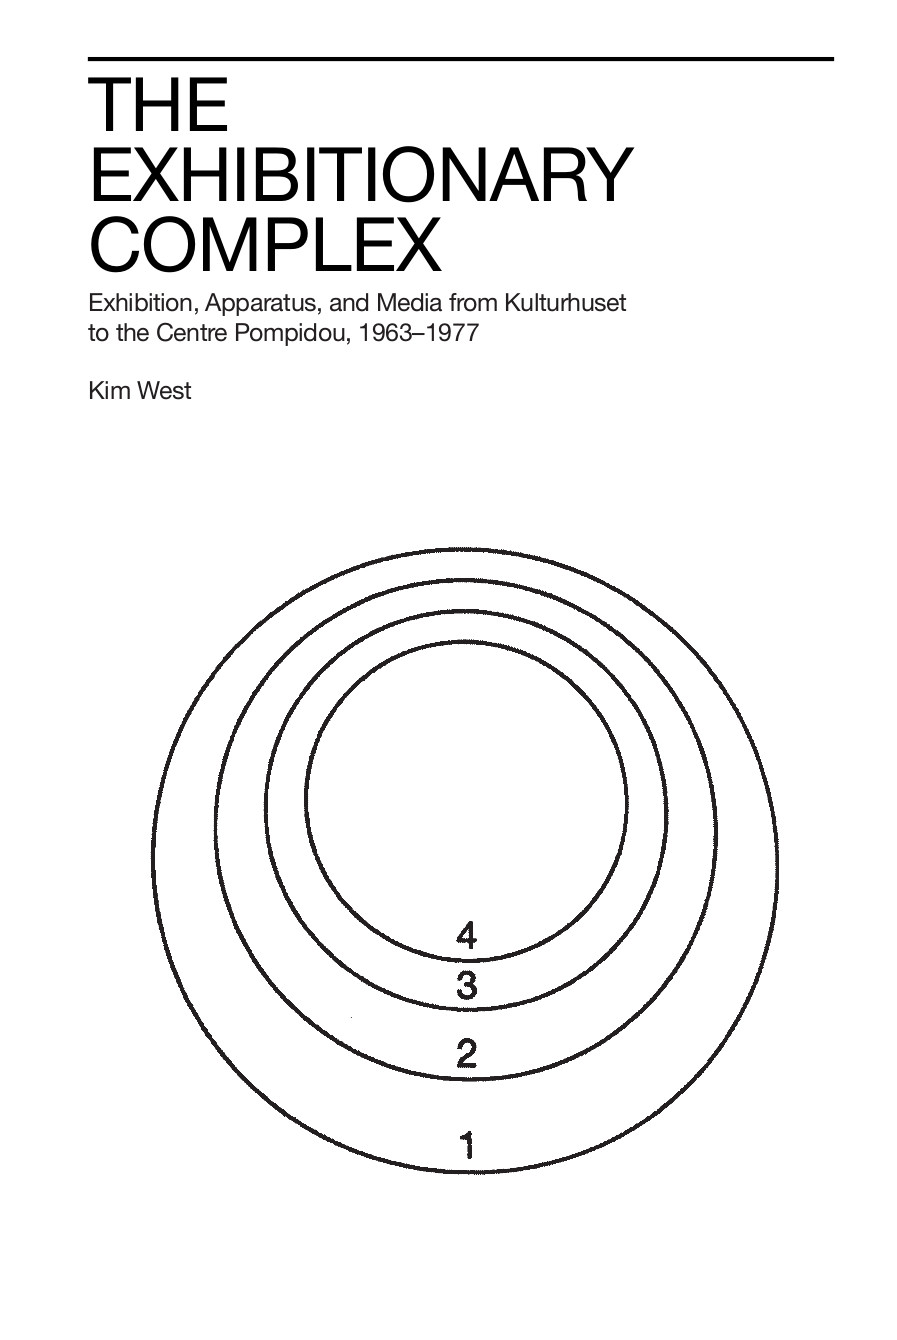 Kim West: The Exhibitionary Complex: Exhibition, Apparatus and Media from Kulturhuset to the Centre Pompidou, 1963-1977 (2017)